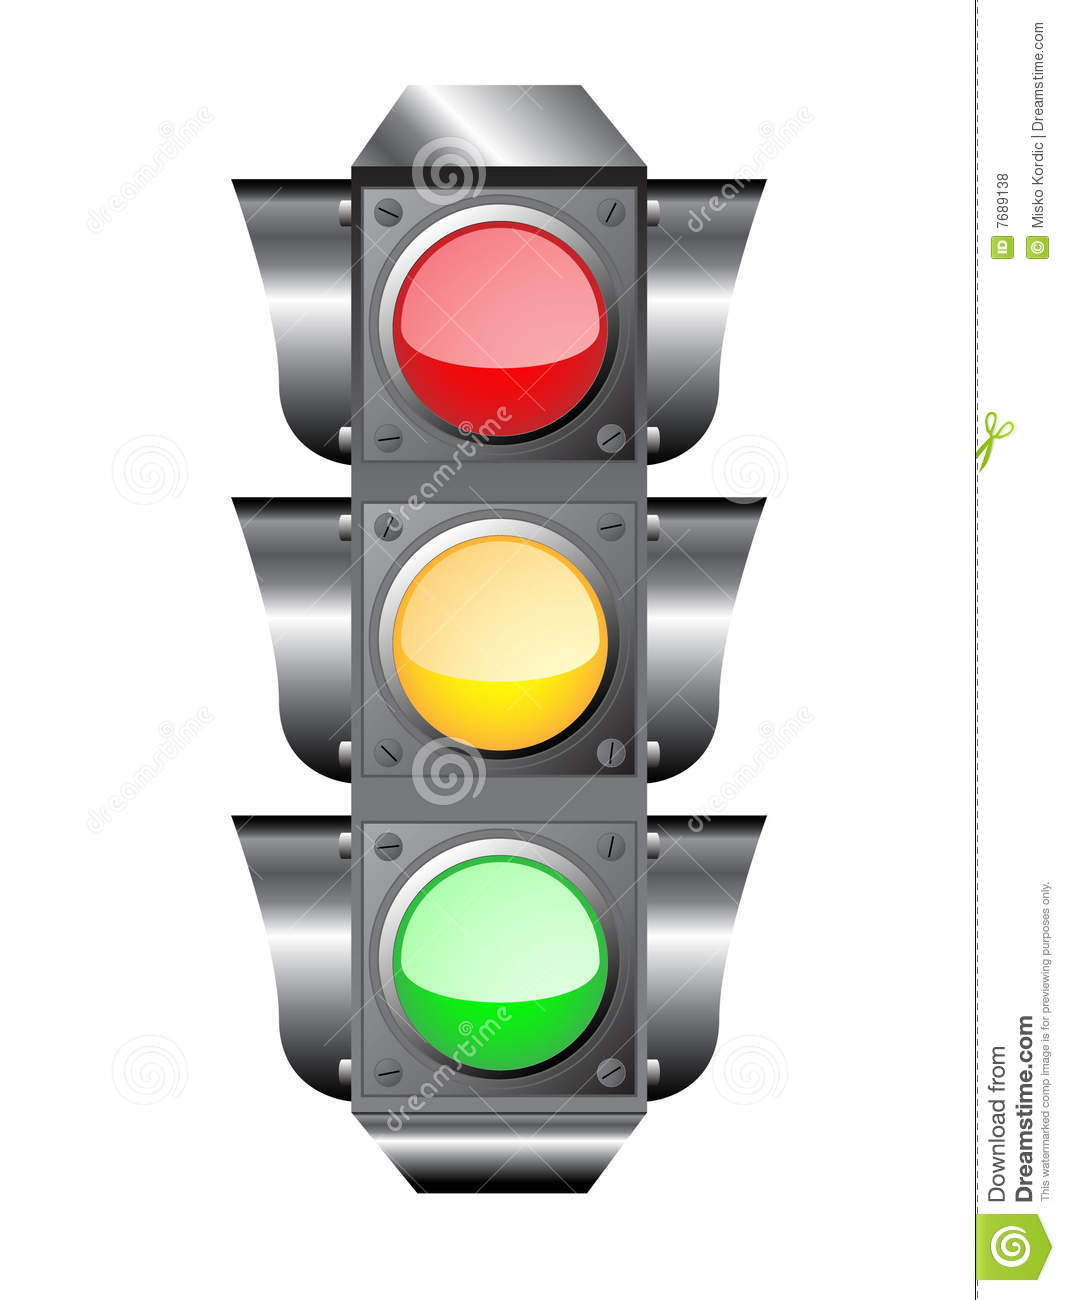 Traffic Light Or Semaphore Royalty Free Stock Photos